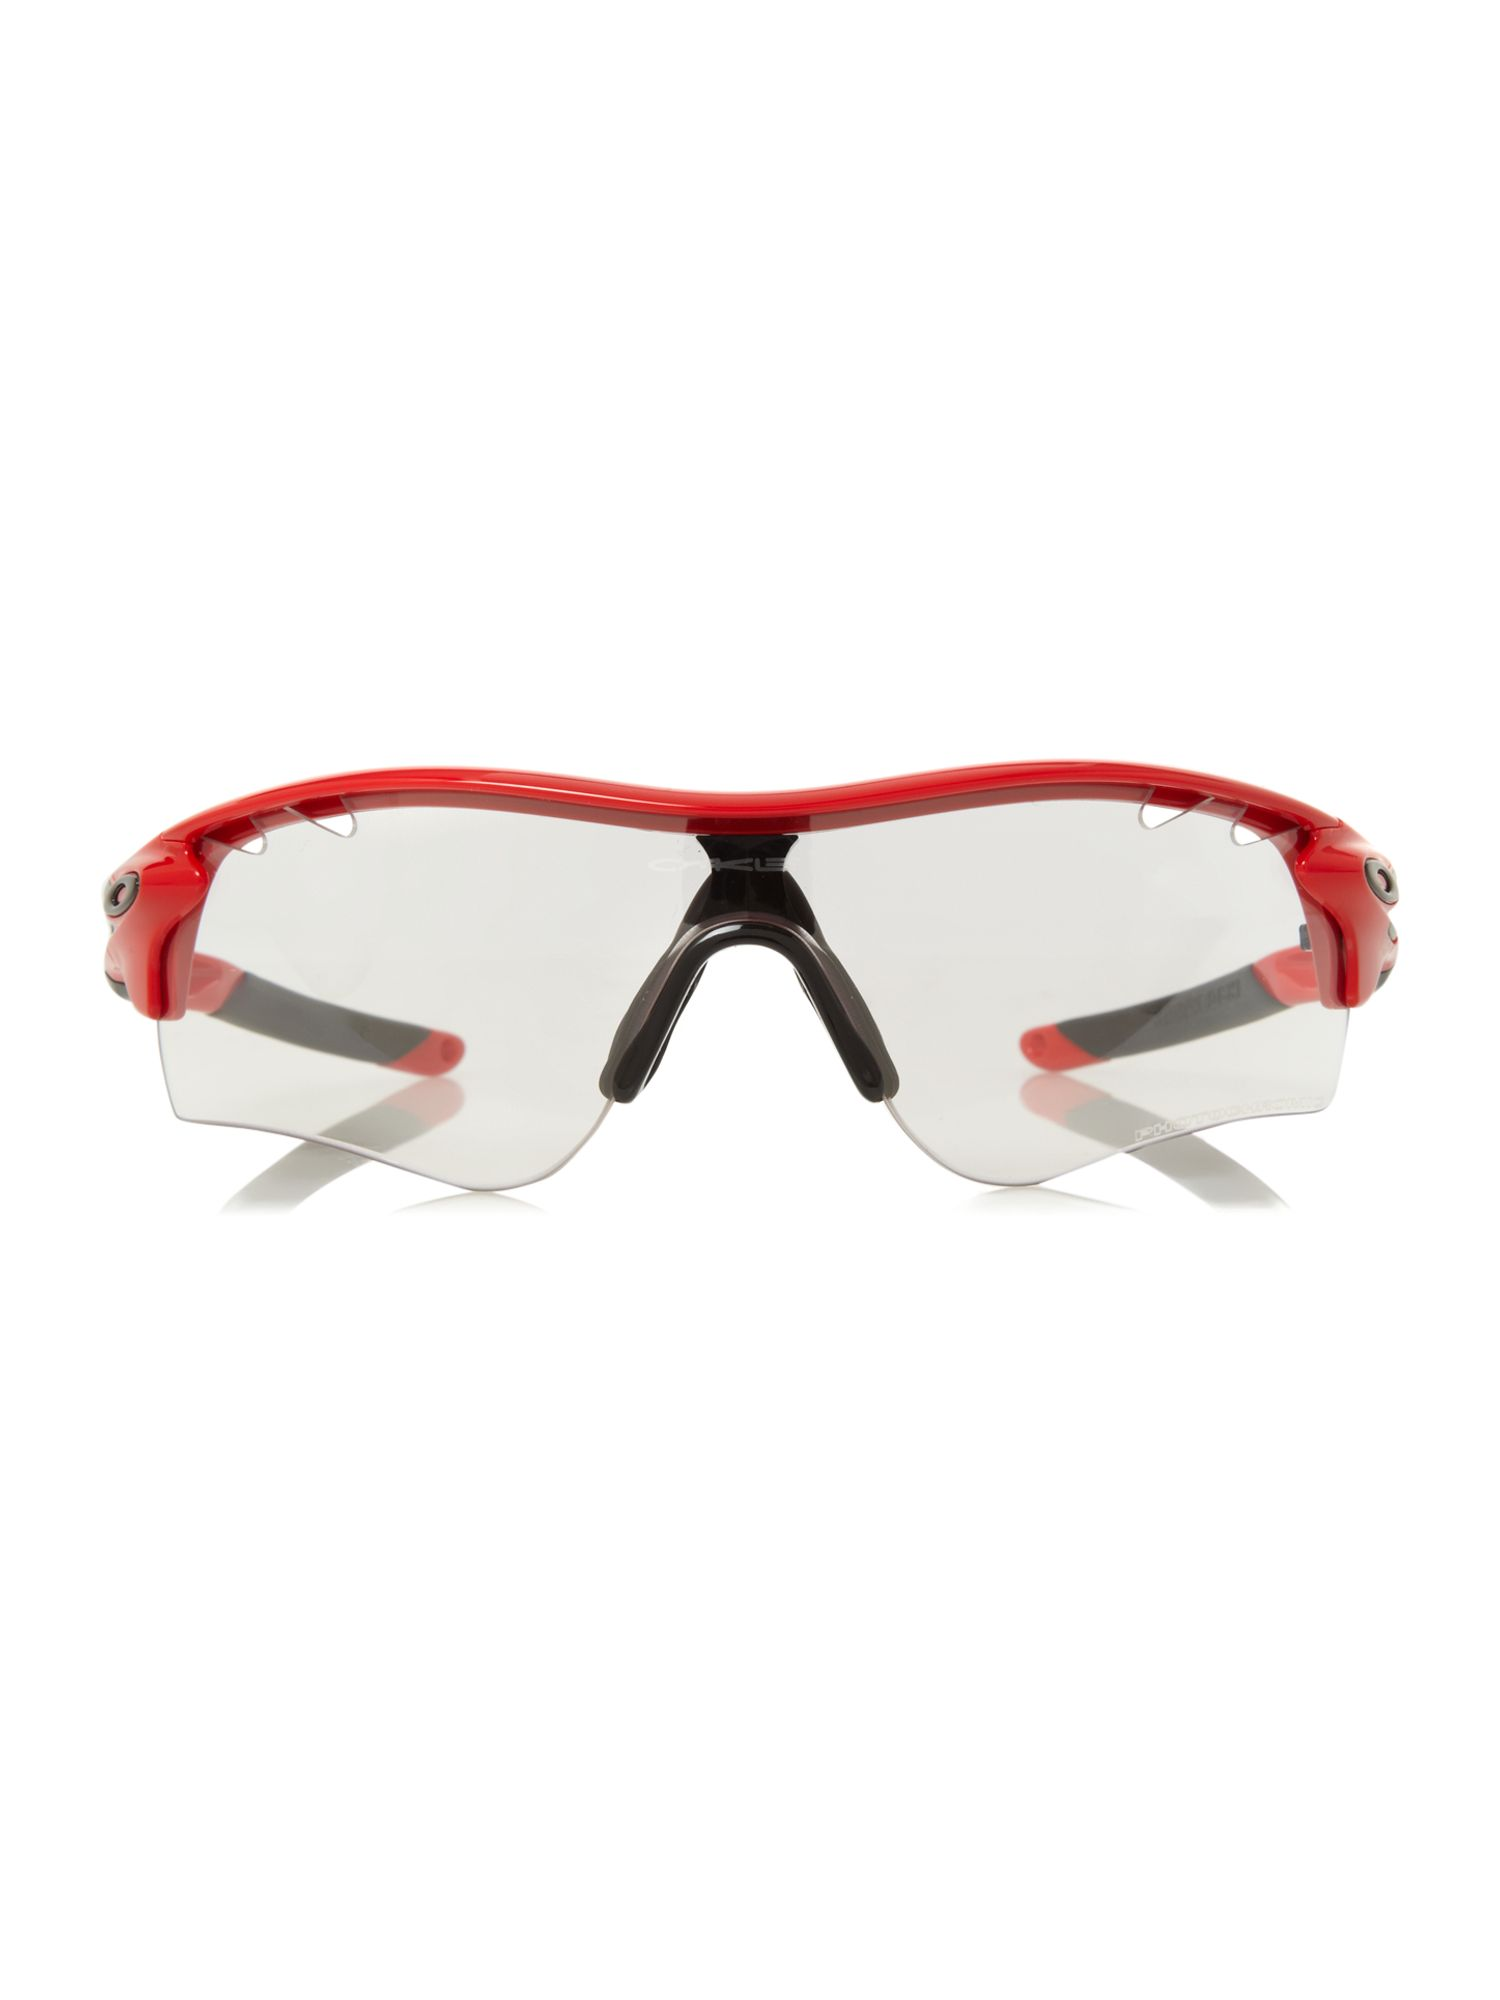 Oakley OO9181 sunglasses